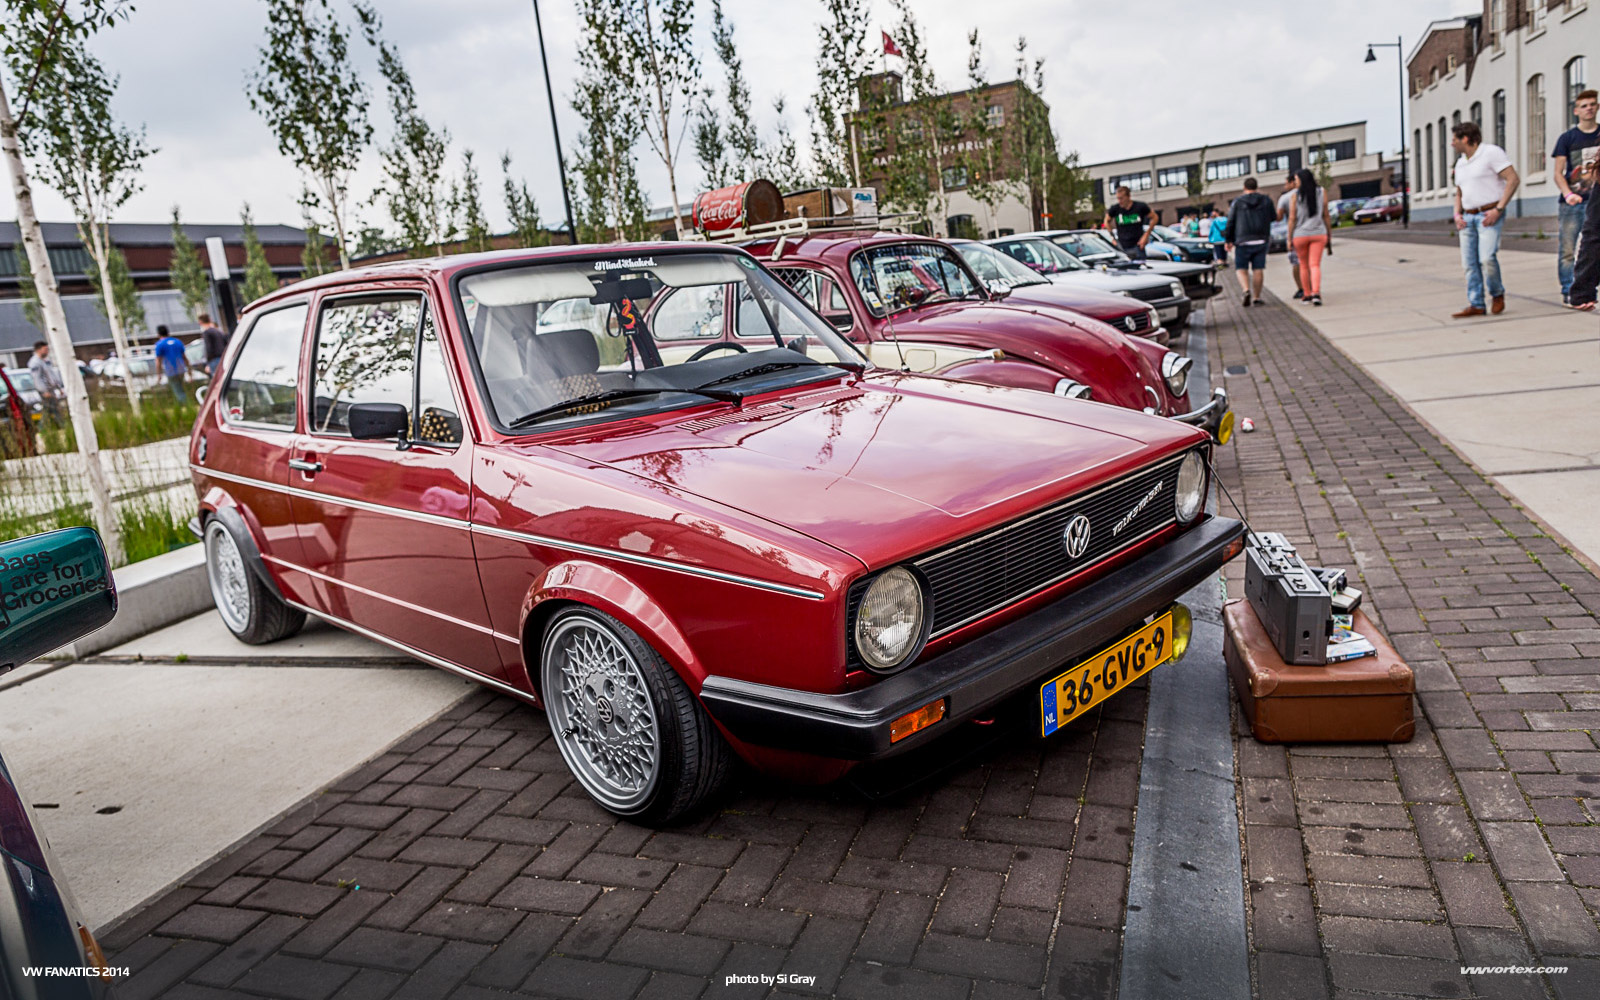 VWFanatics-2014-Si-Gray-447